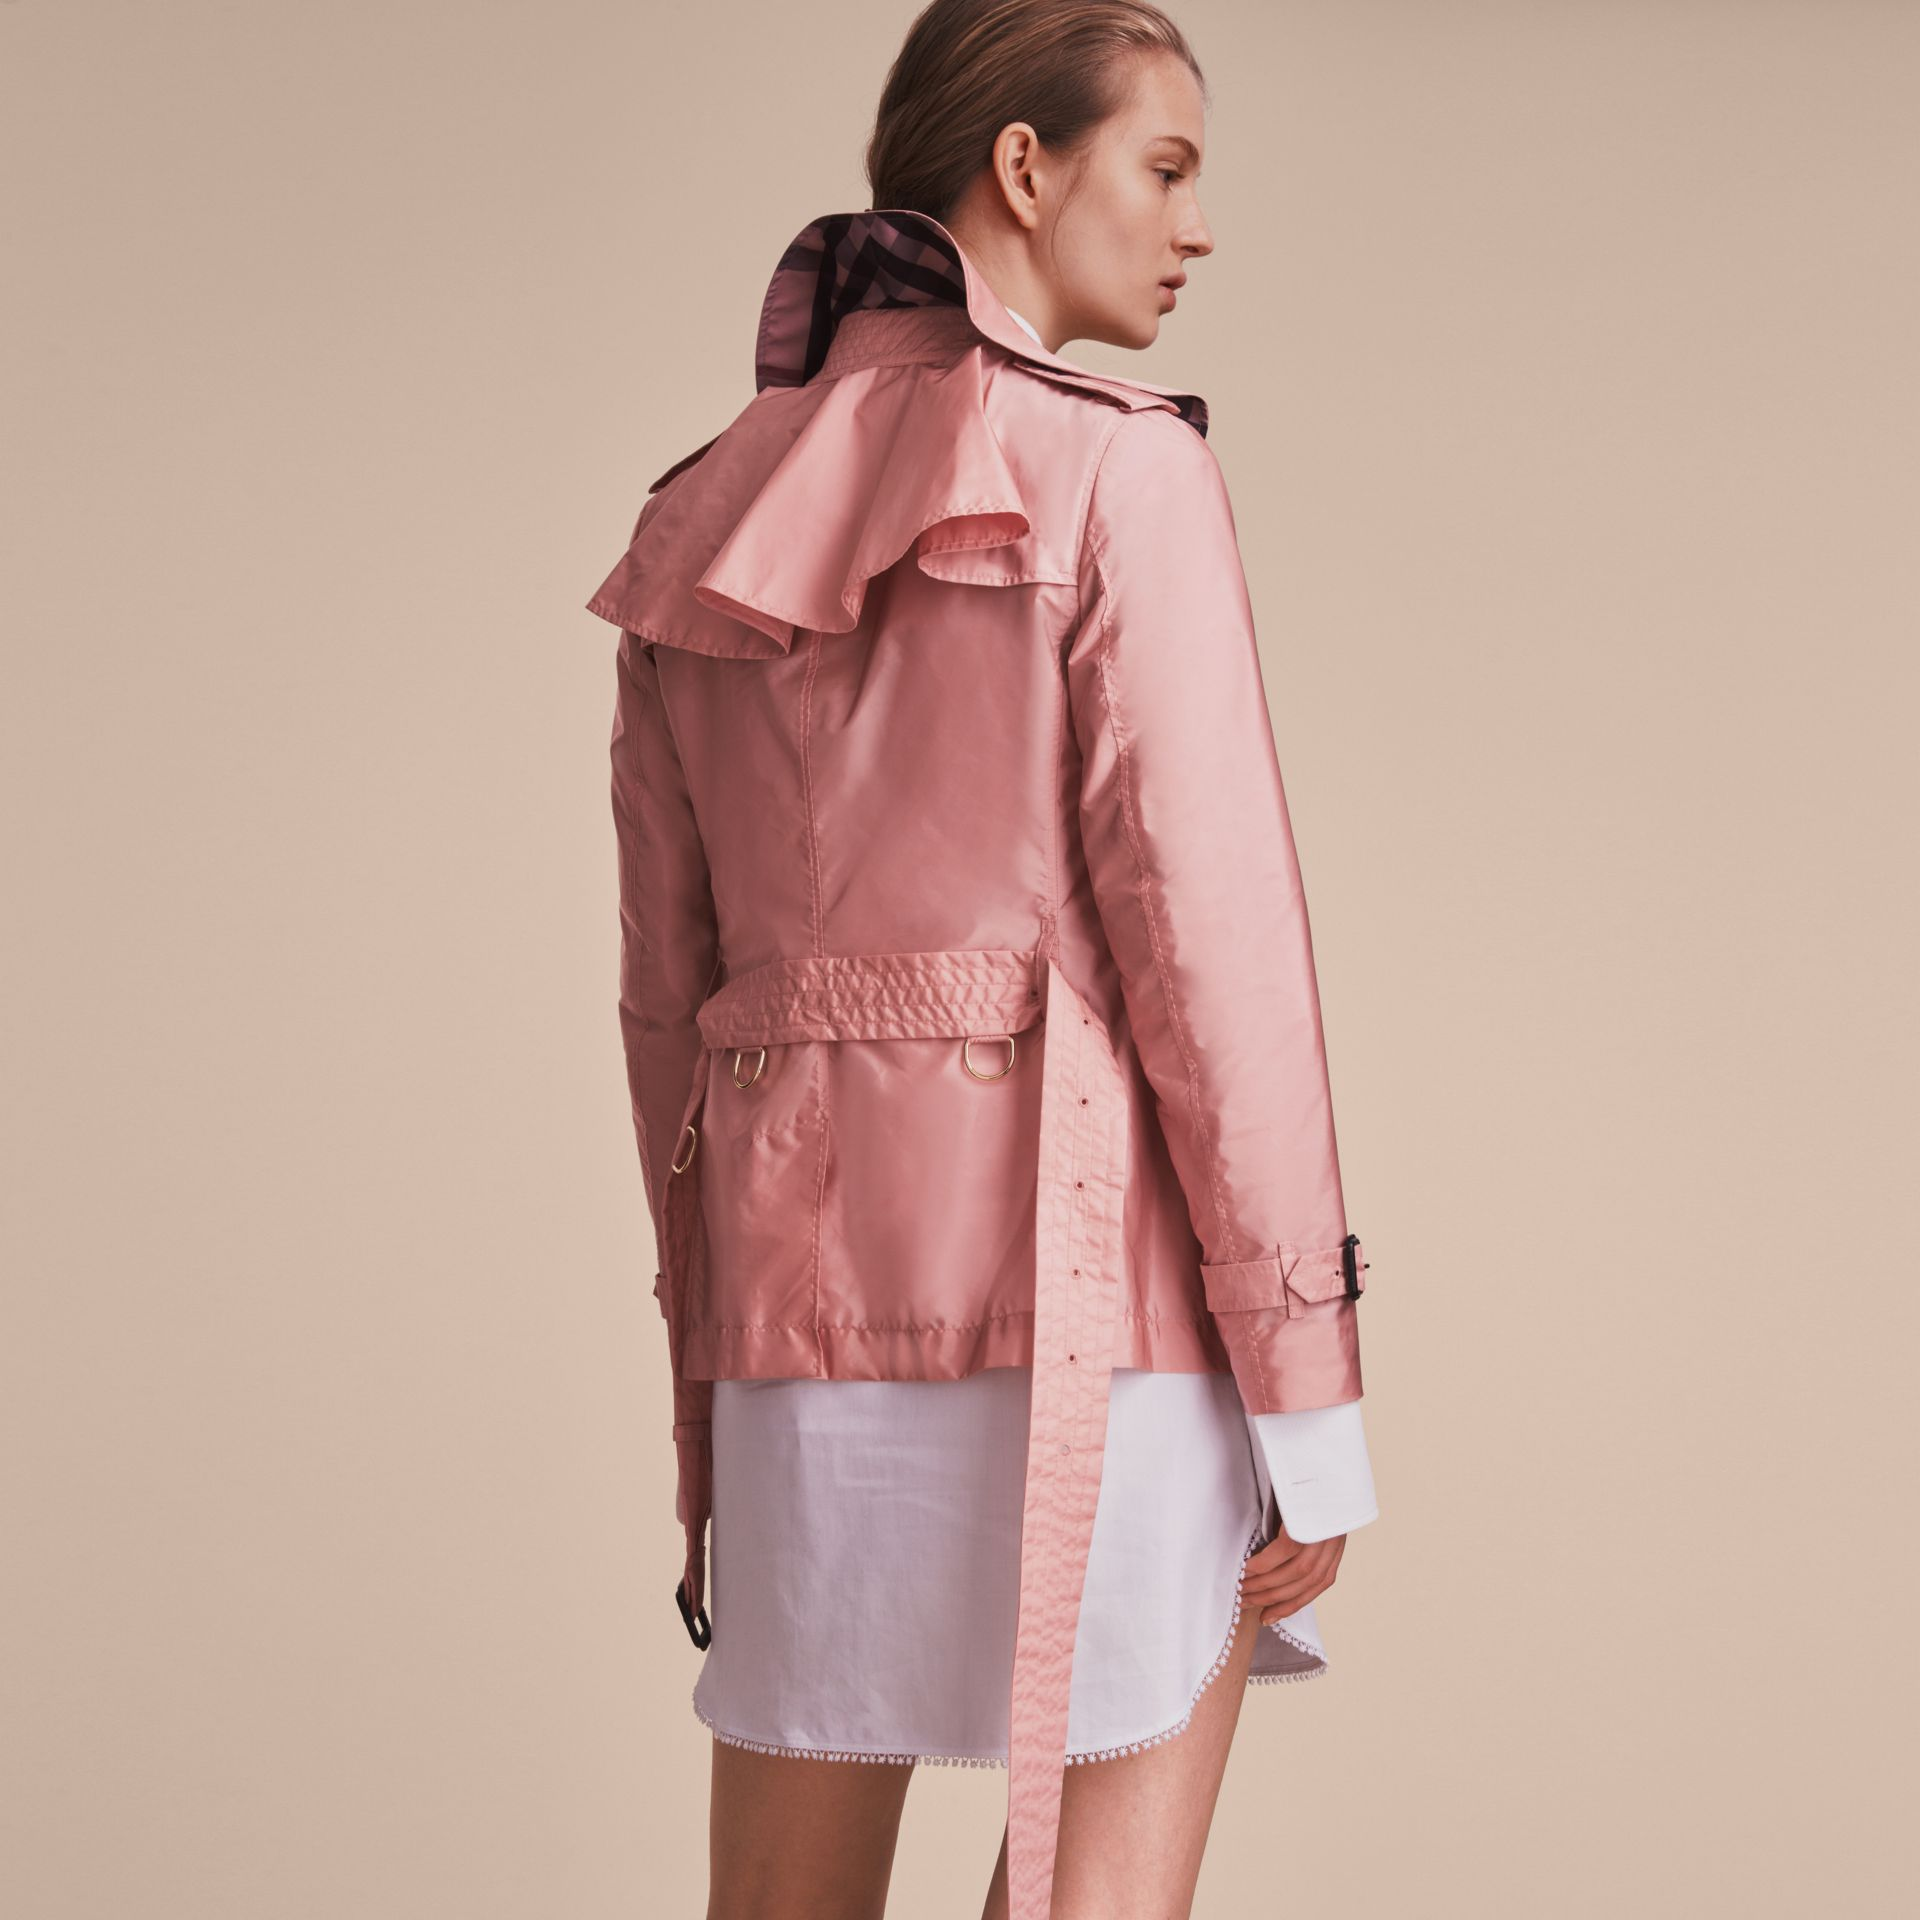 Showerproof Trench Coat in Antique Rose - Women | Burberry - gallery image 3